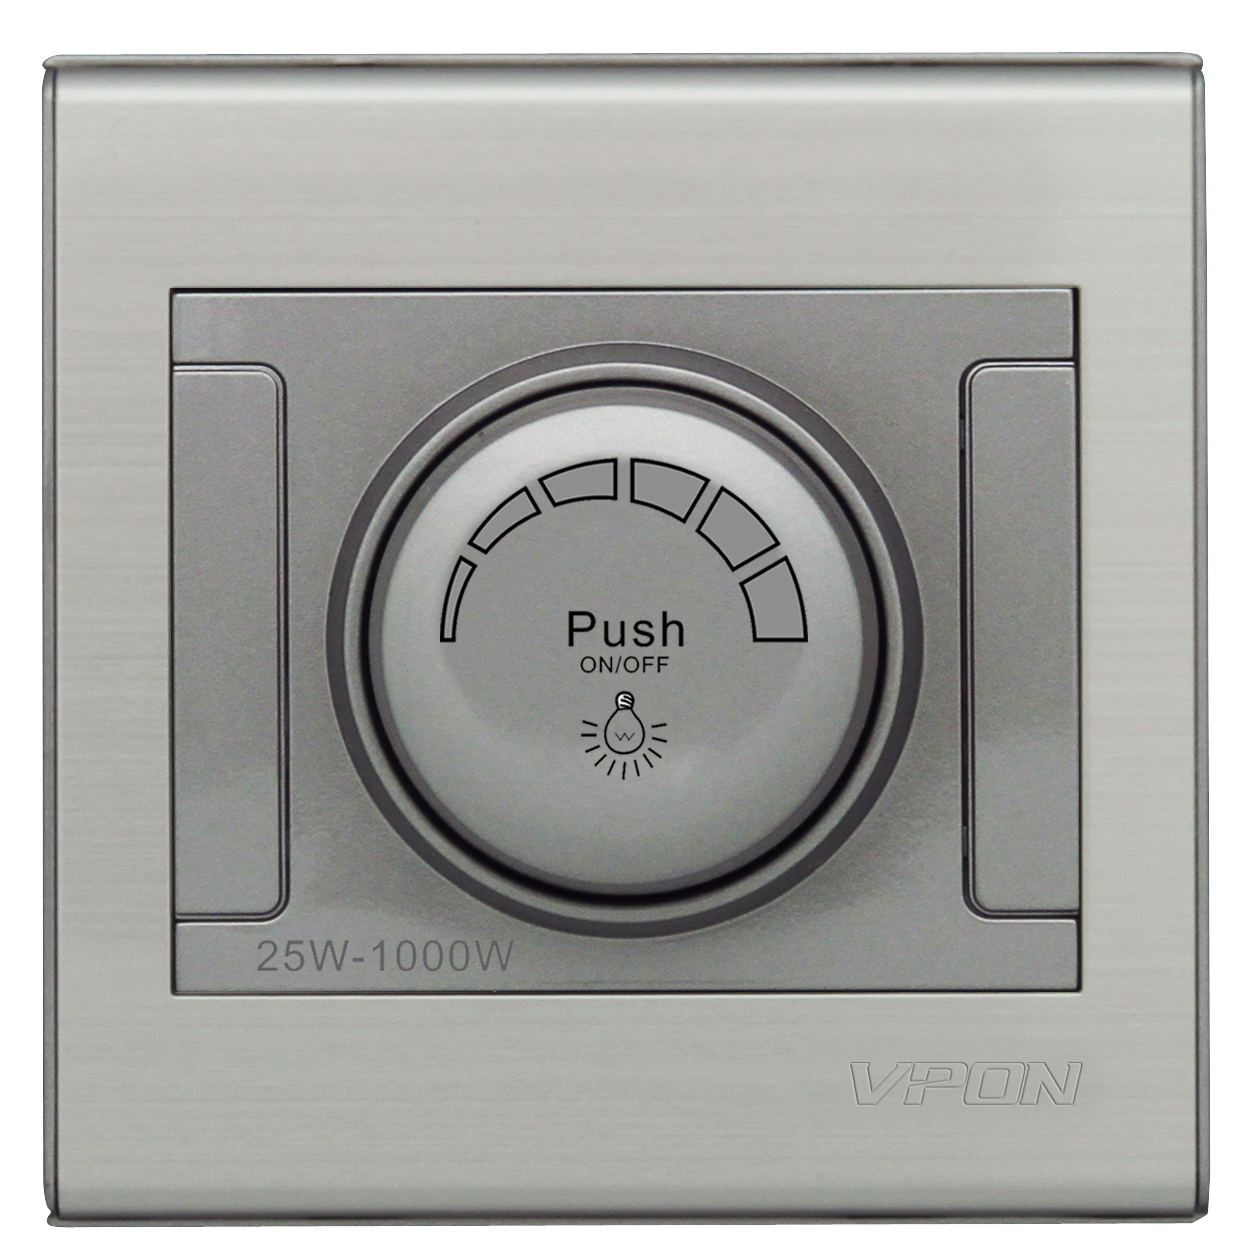 Light Dimmer(Push on/off)